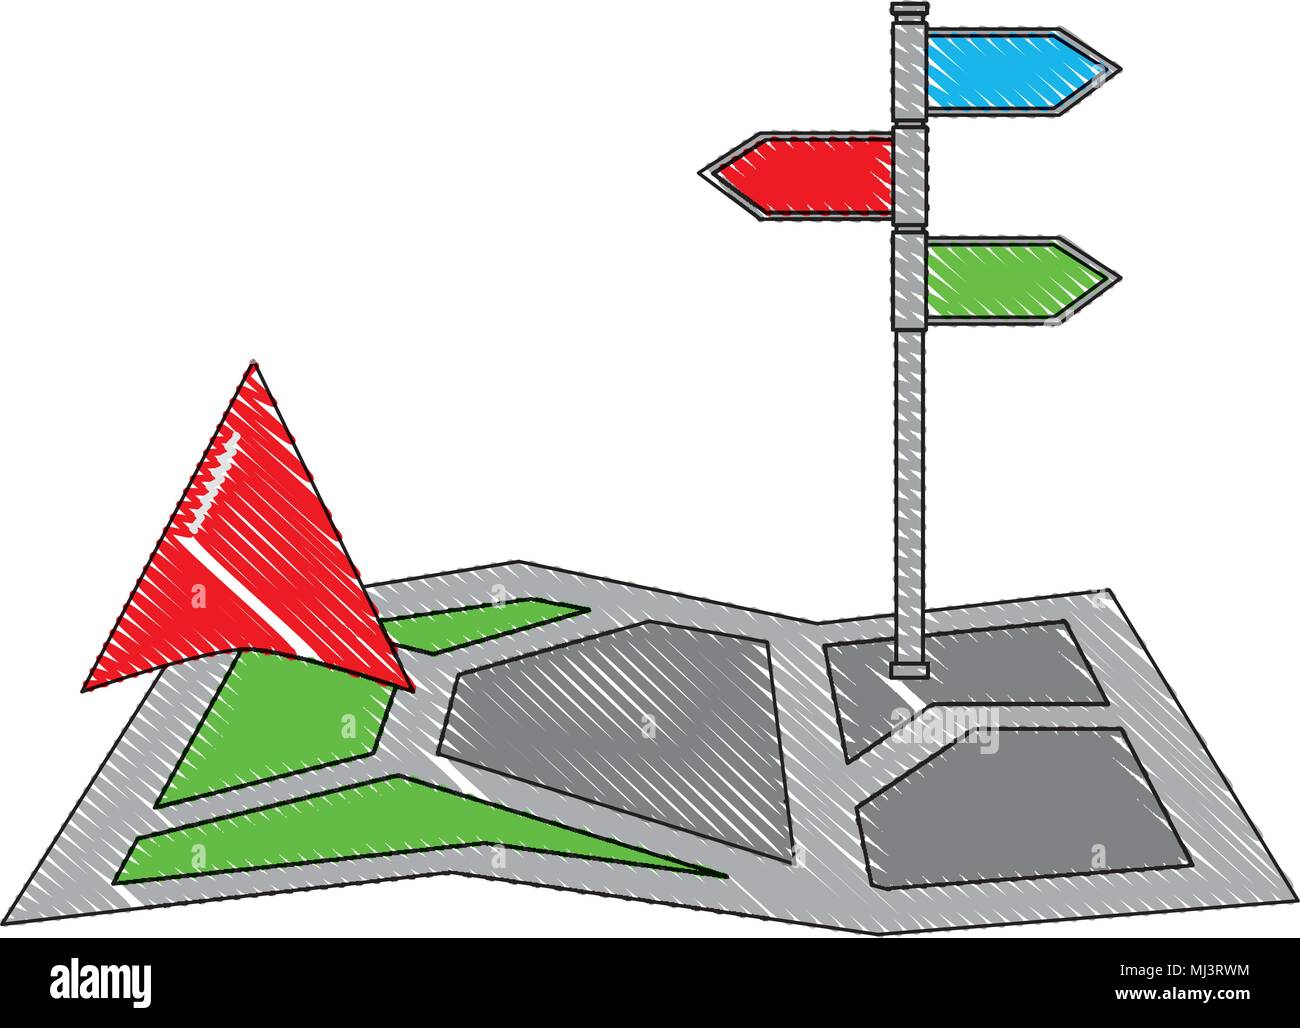 Gps Navigation Map Arrow And Stand Position Image Vector Illustration Drawing Stock Vector Image Art Alamy Most arrows are able to be used to trade and have different values. alamy